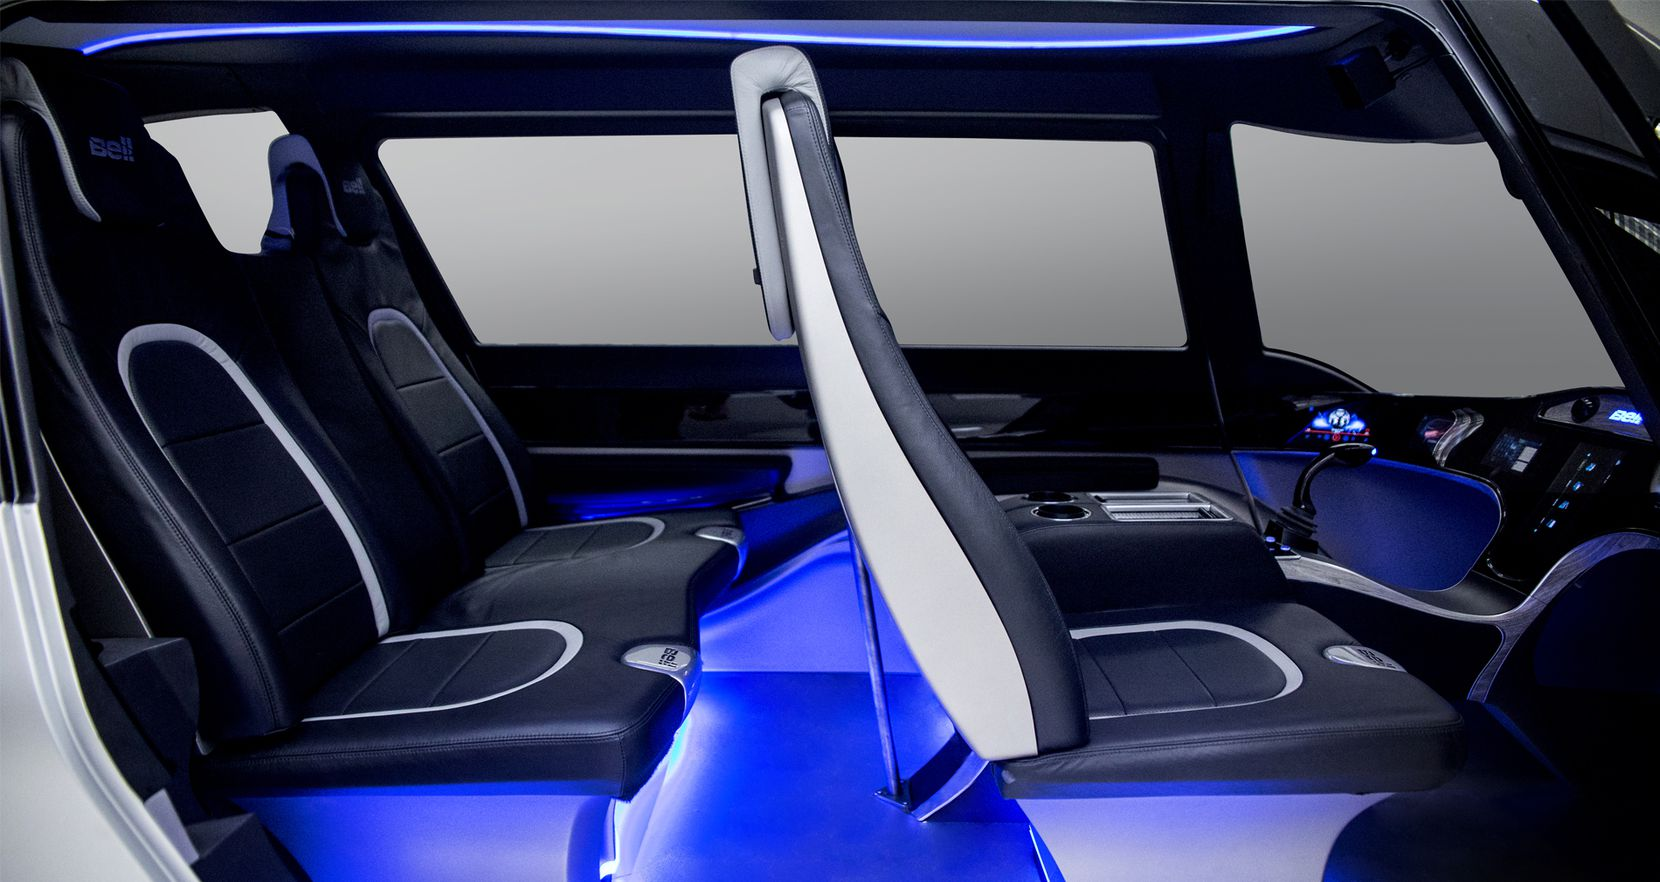 The four-passenger cabin of Bell's air taxi includes leather seats and a display area that could be used for a video conference call.